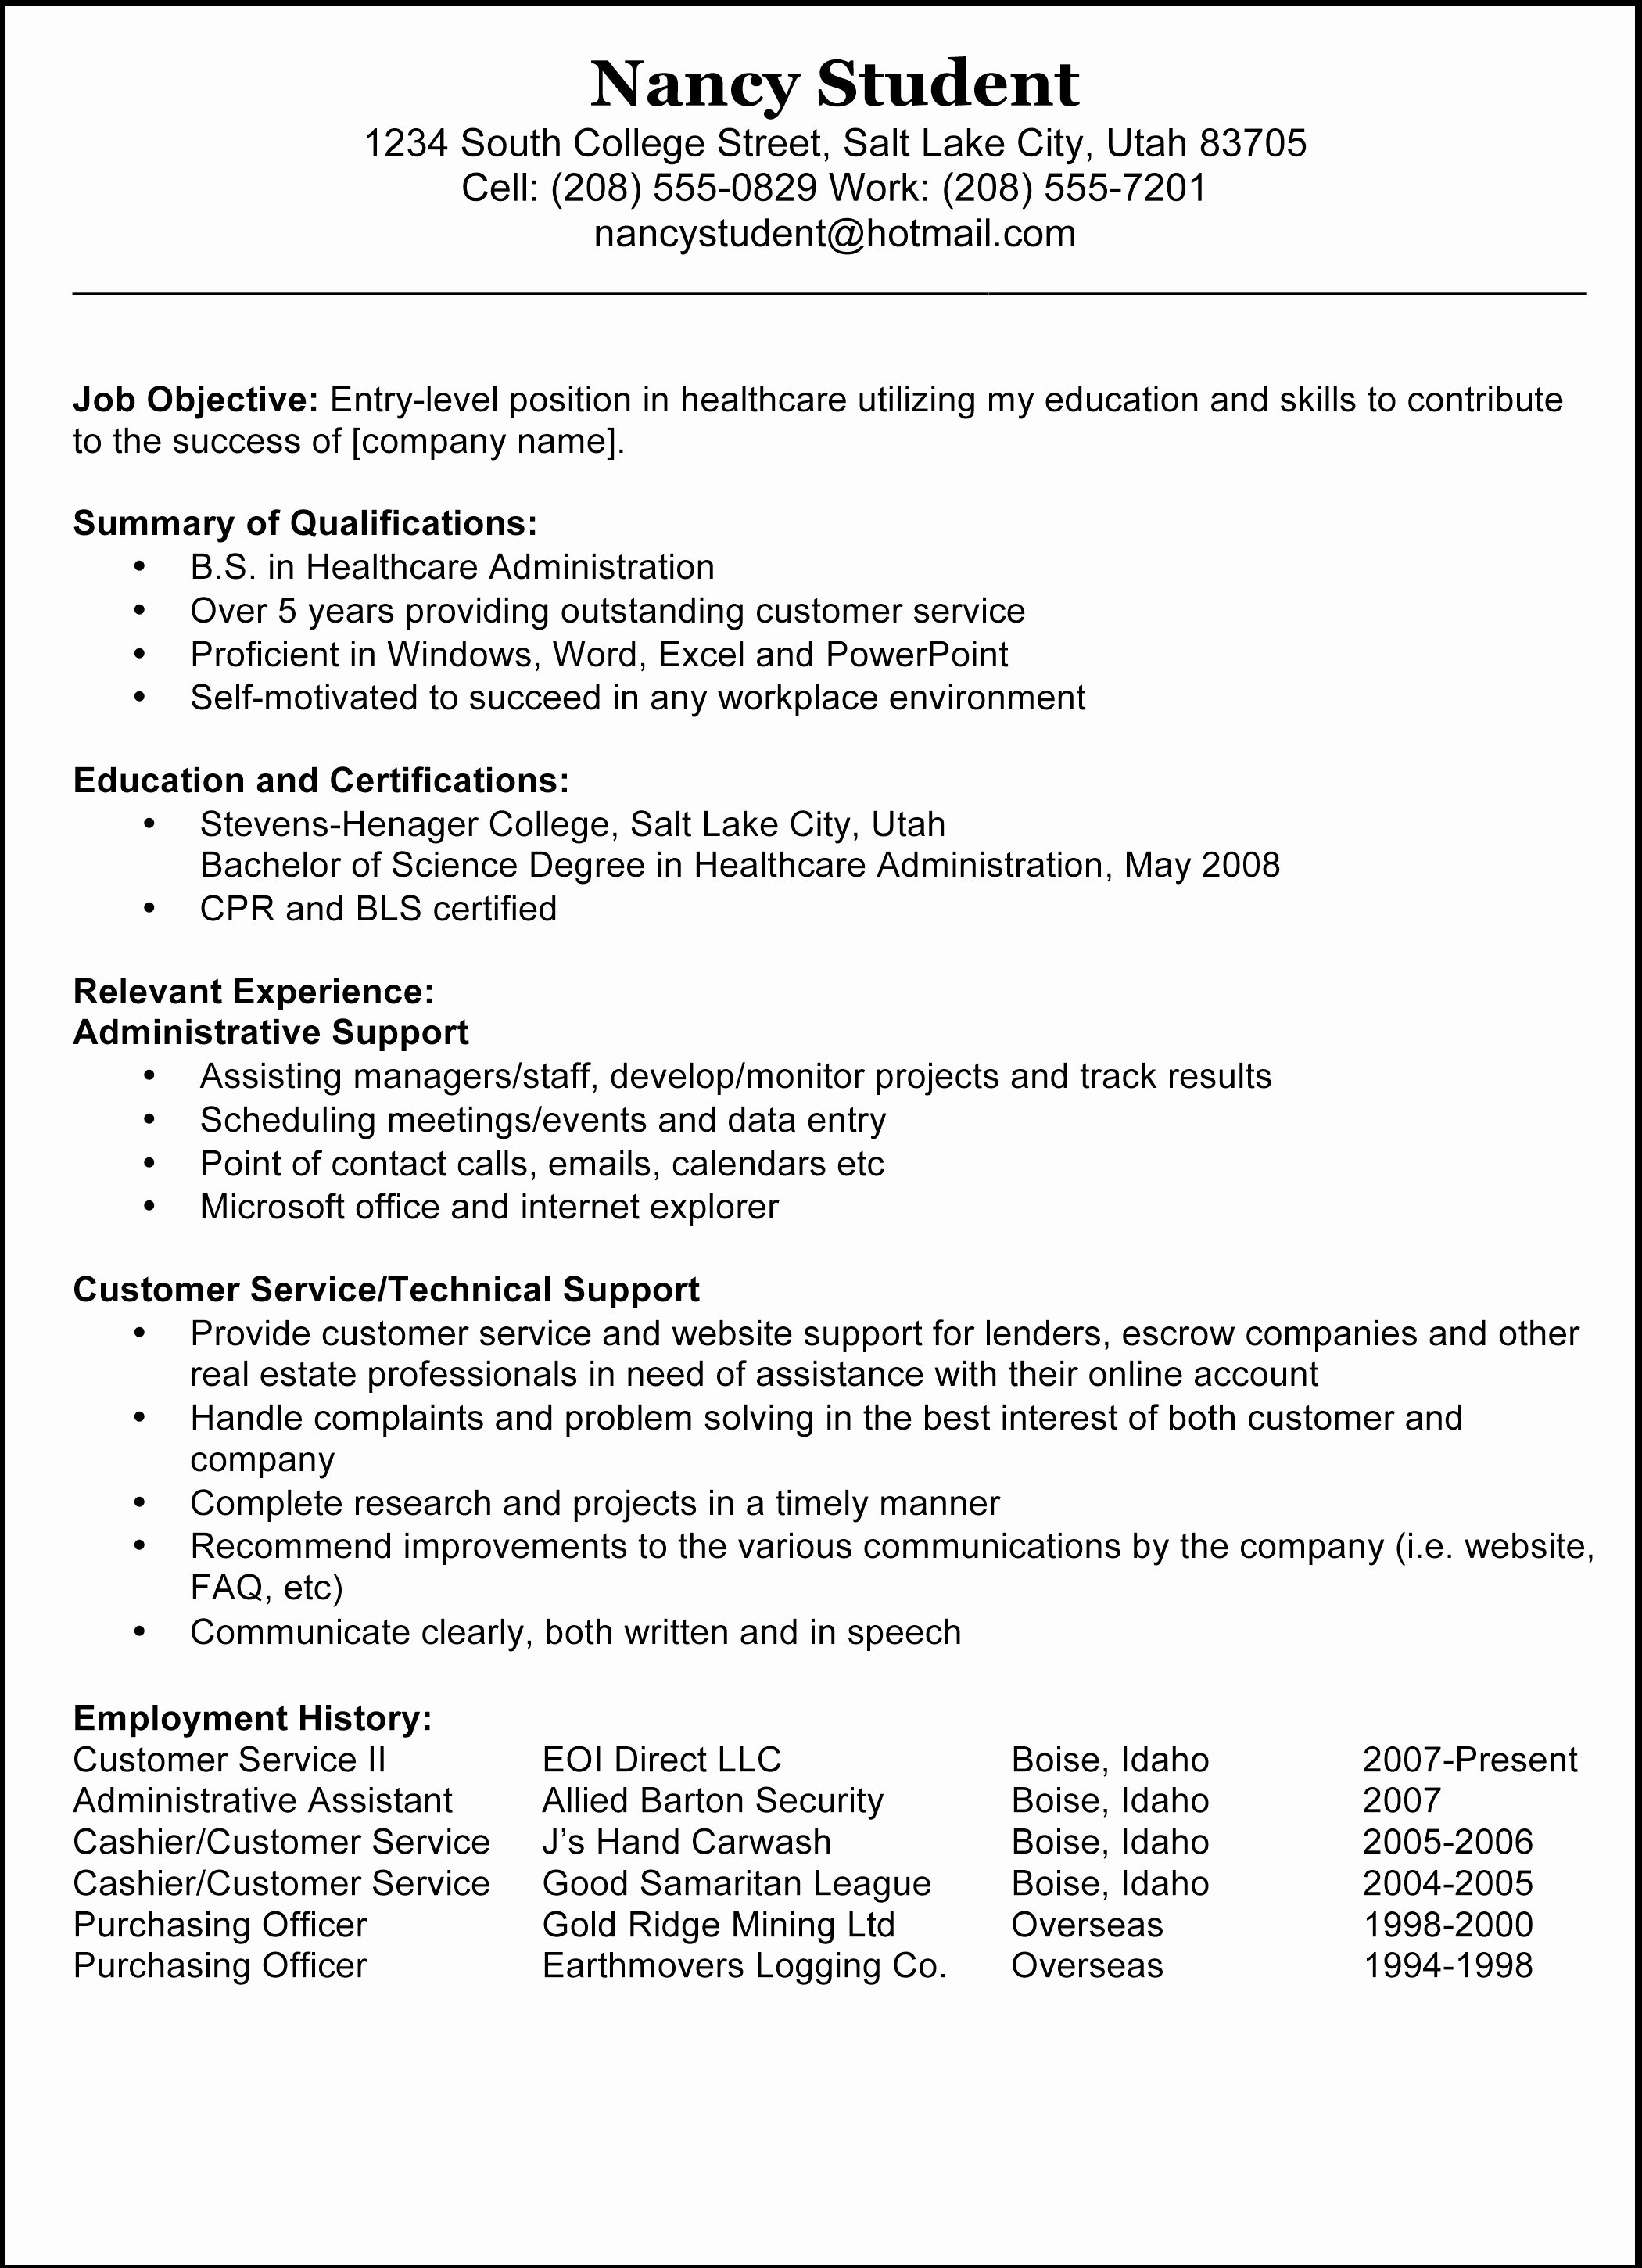 Healthcare Management Resume - Healthcare Knowledge Ltd